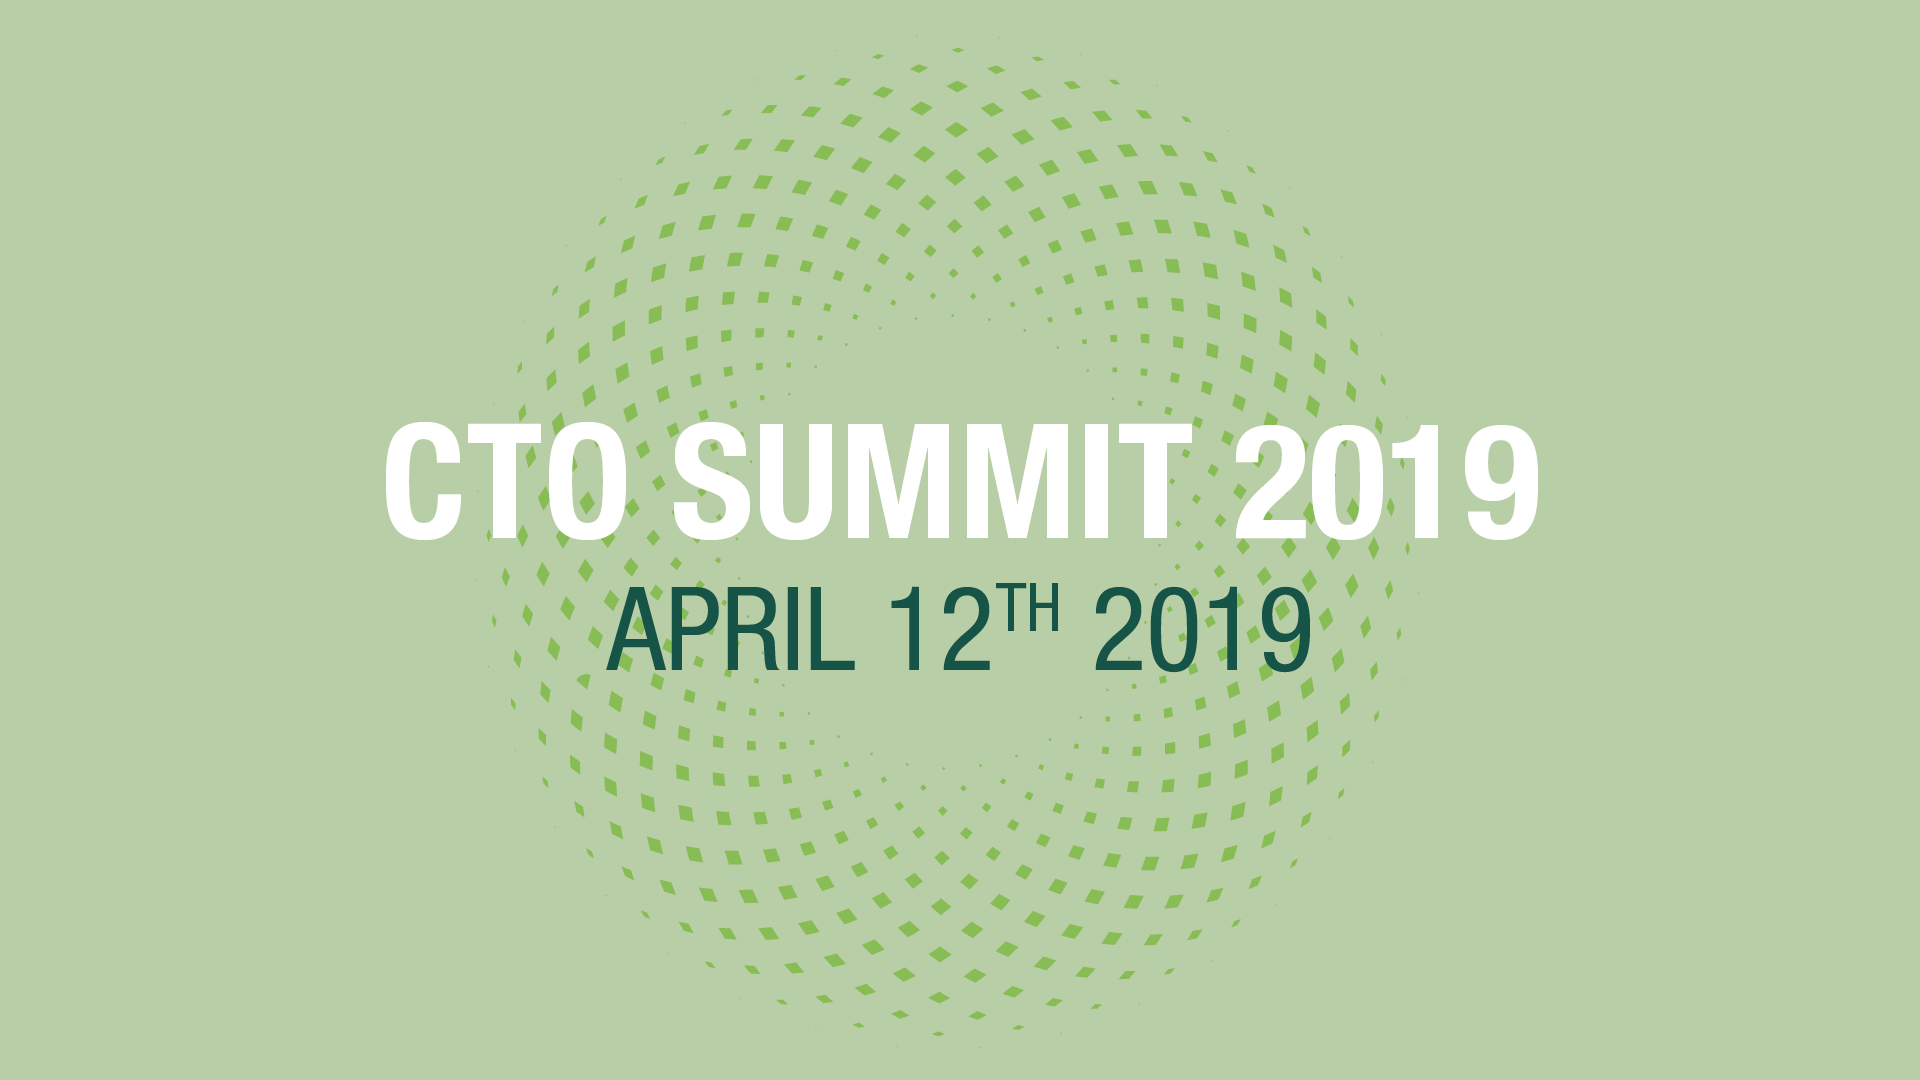 CTO SUMMIT 2019: Friday, April 12th Morning